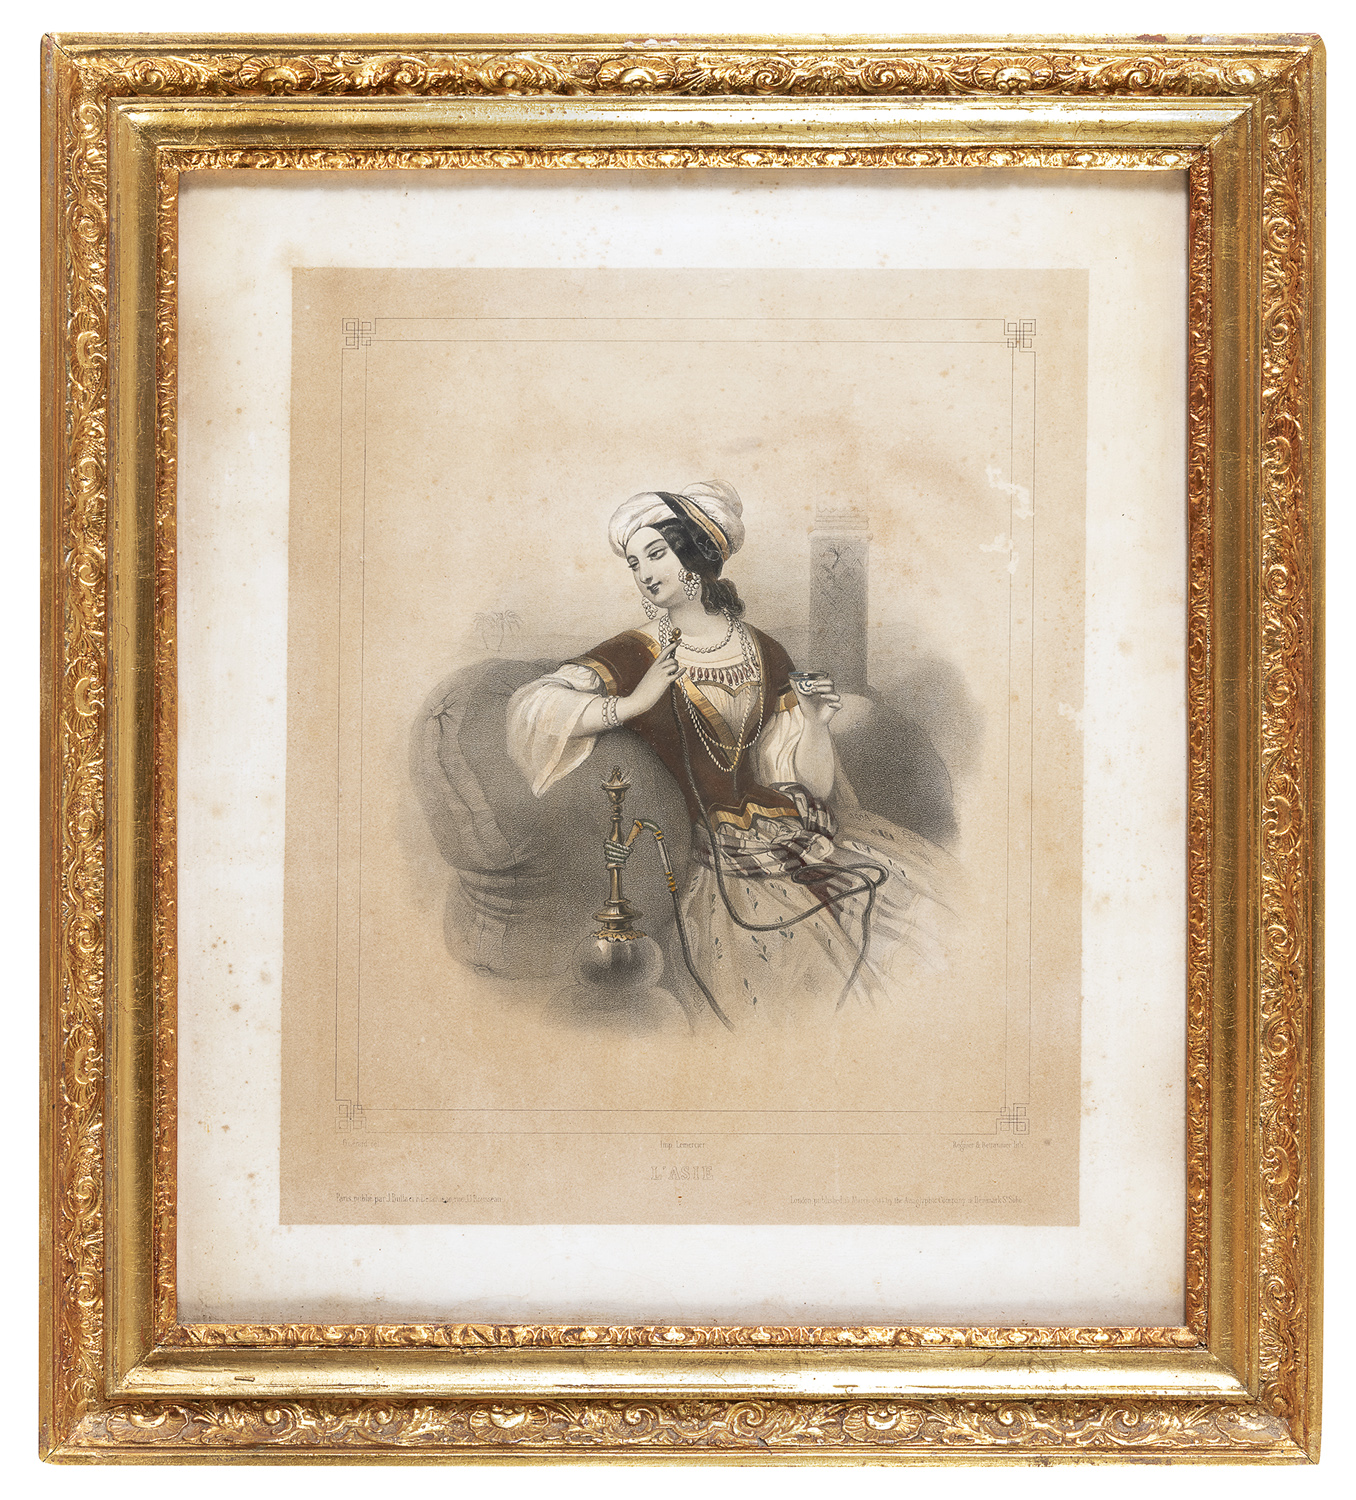 PAIR OF FRENCH ENGRAVINGS 20th CENTURY - Image 2 of 2